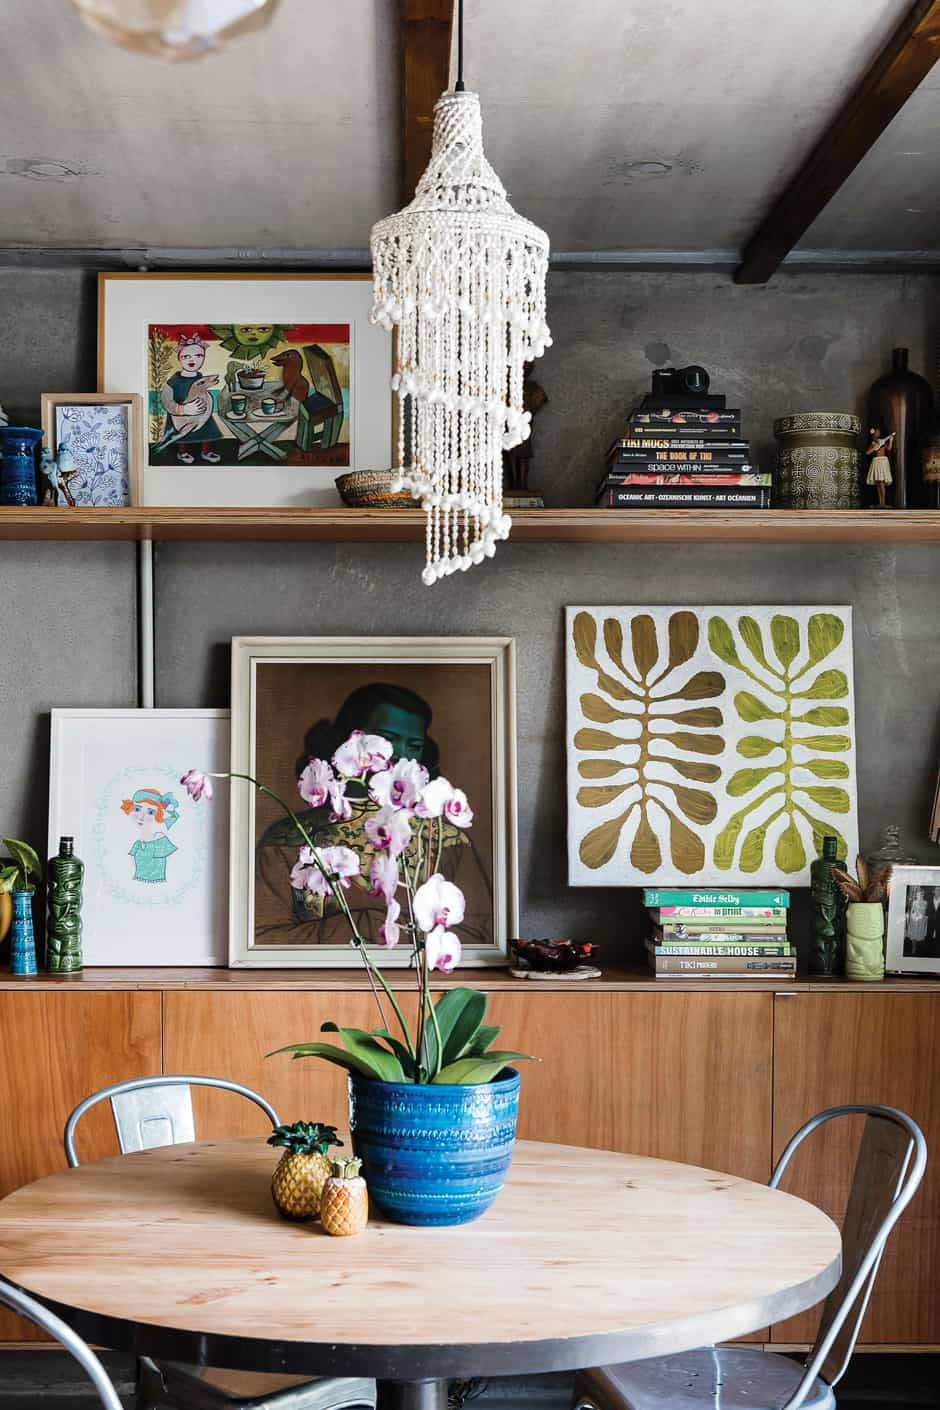 SHELVE IT In the dining area, where the family gathers at the $20 op shop table the couple sanded and painted, Susanna's framed illustrations rub shoulders with an eye-catching collection of vintage paintings and souvenirs, as well as pottery finds from Australia and Paul's native New Zealand. Susanna has repurposed her favourite blue Bitossi vase as a planter for an exotic orchid.